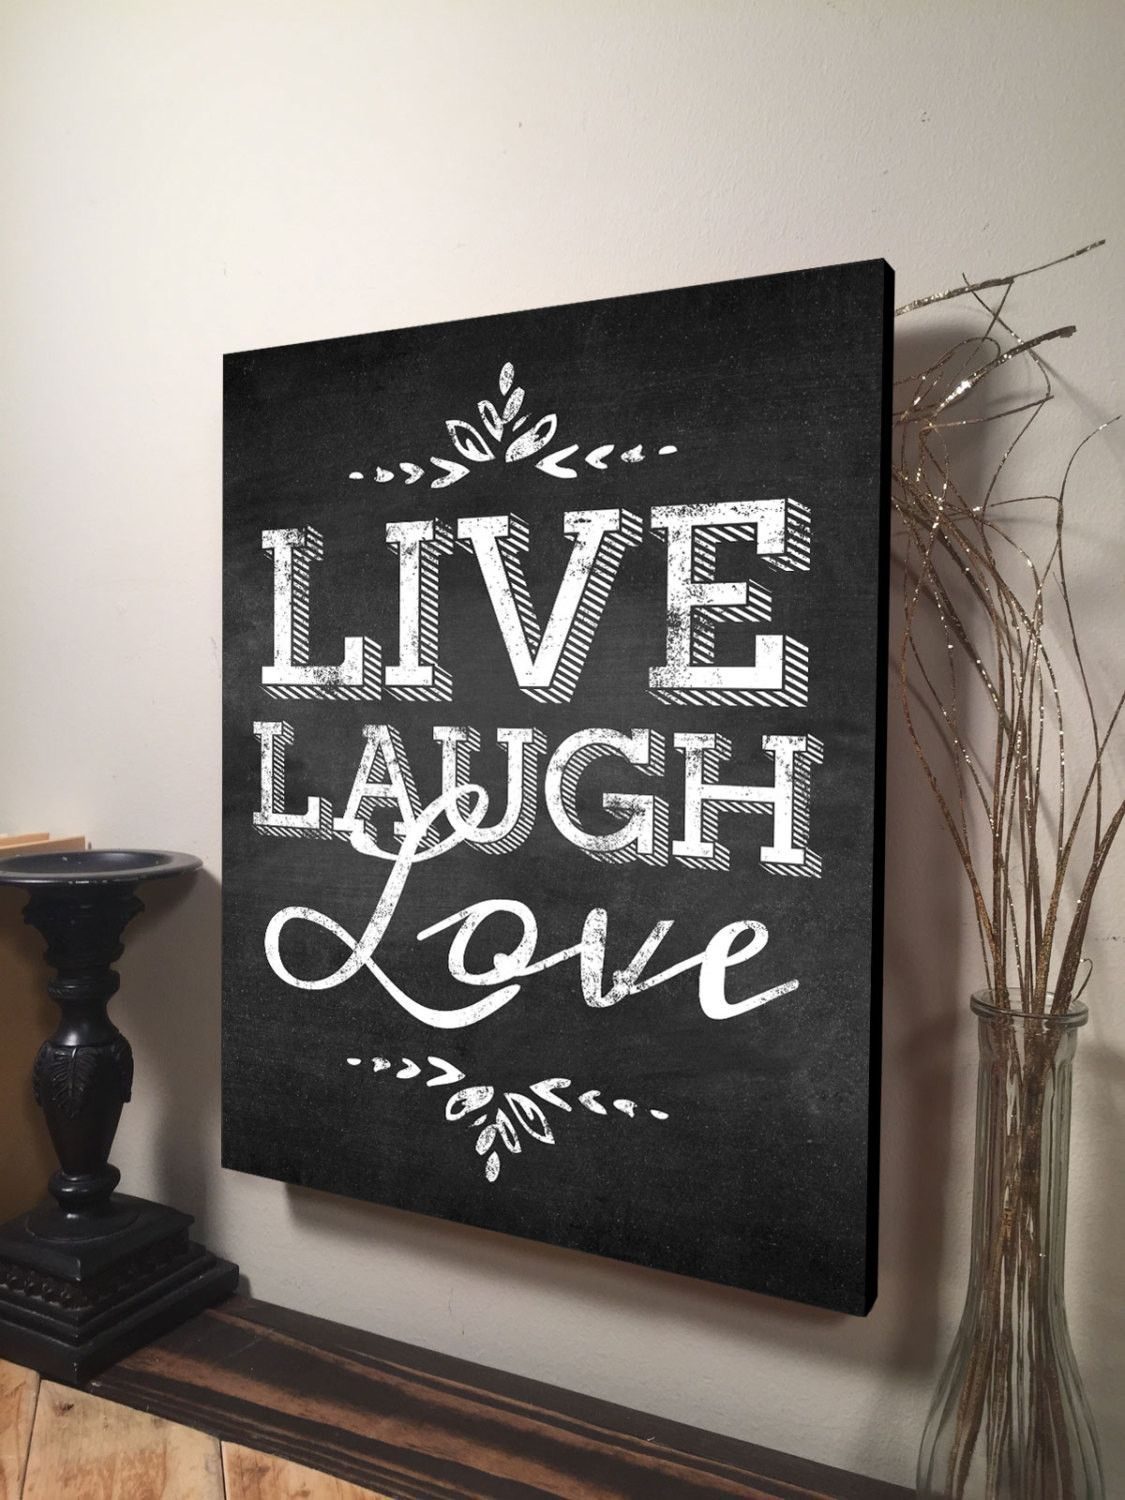 Live Laugh Love Wall Art Inspirational Quote Home Decor Pertaining To Live, Laugh, Love Antique Copper Wall Decor (View 9 of 30)